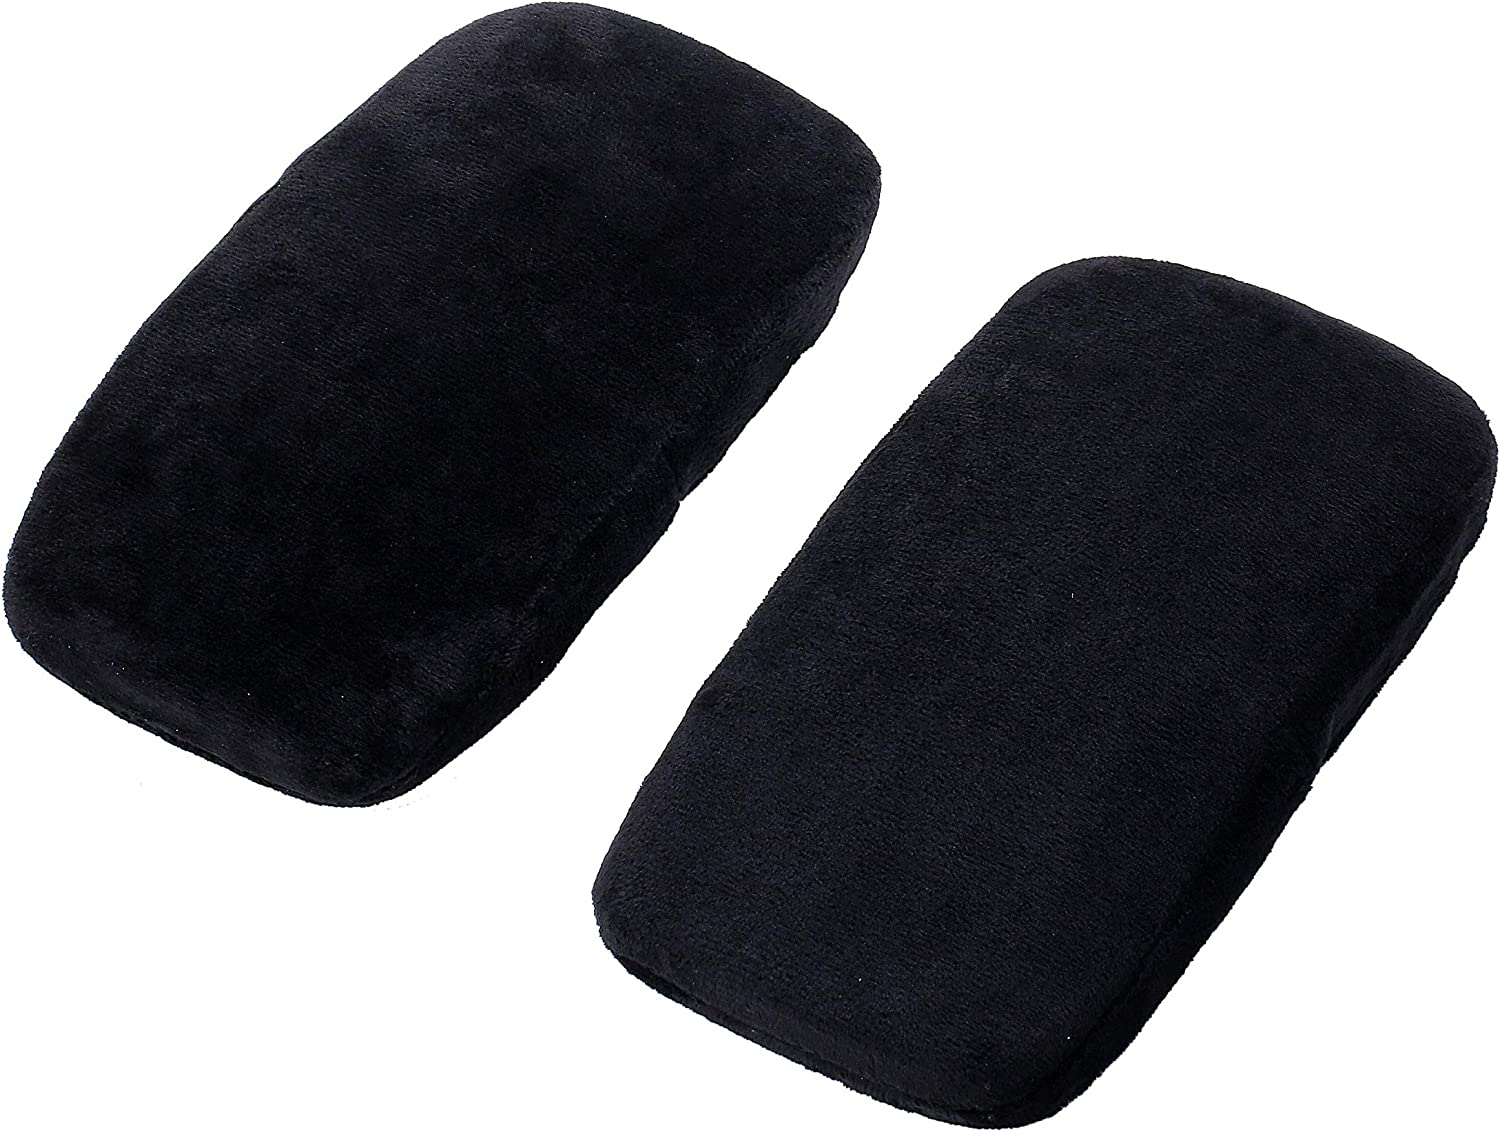 Ergonomic Memory Foam Office Chair Armrest Pads,Gaming Chairs Armrest Covers, Relieve Forearm & Elbow Pain, Computer Desk Chair Arm Pad & Comfy Elbow Cushion(Set of 2)